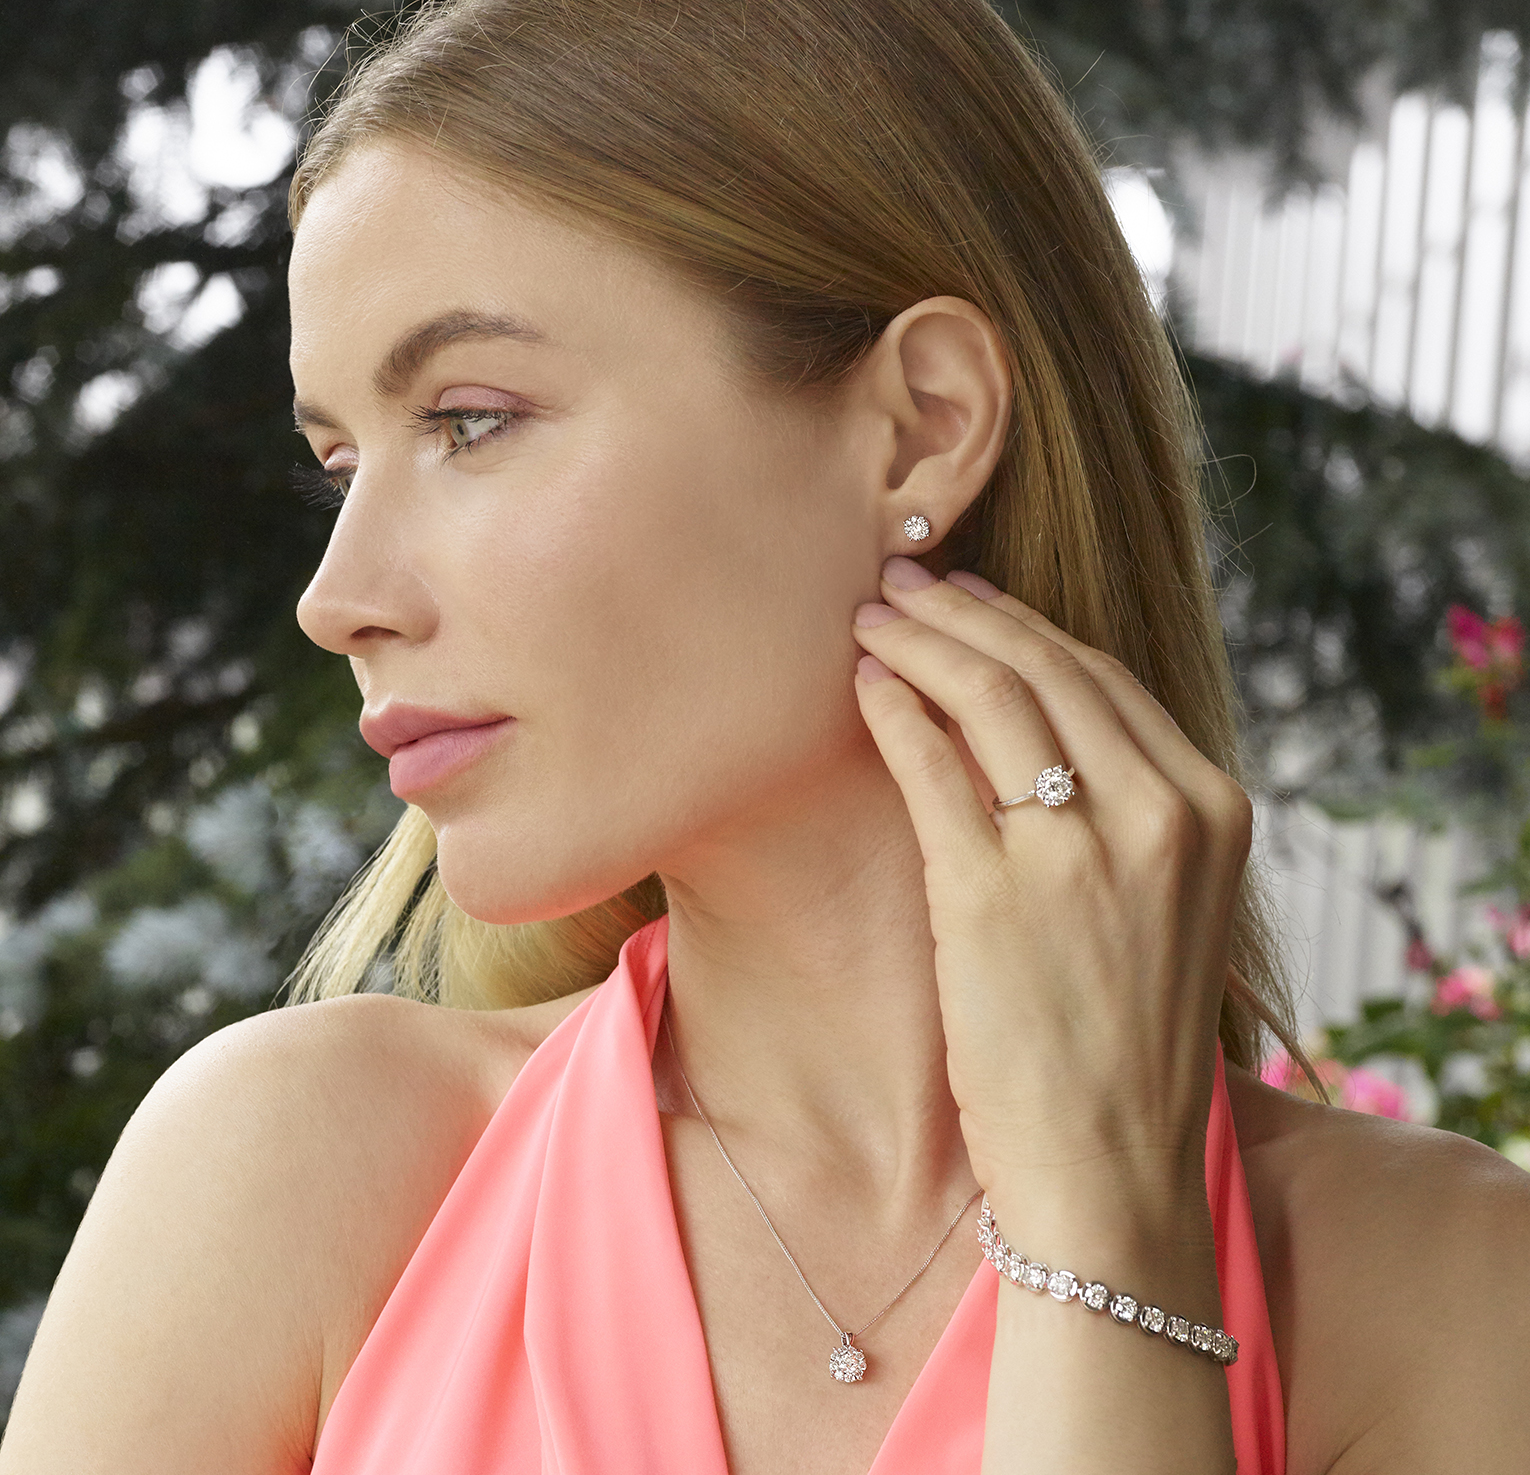 A simple guide to choosing the perfect jewelry gift